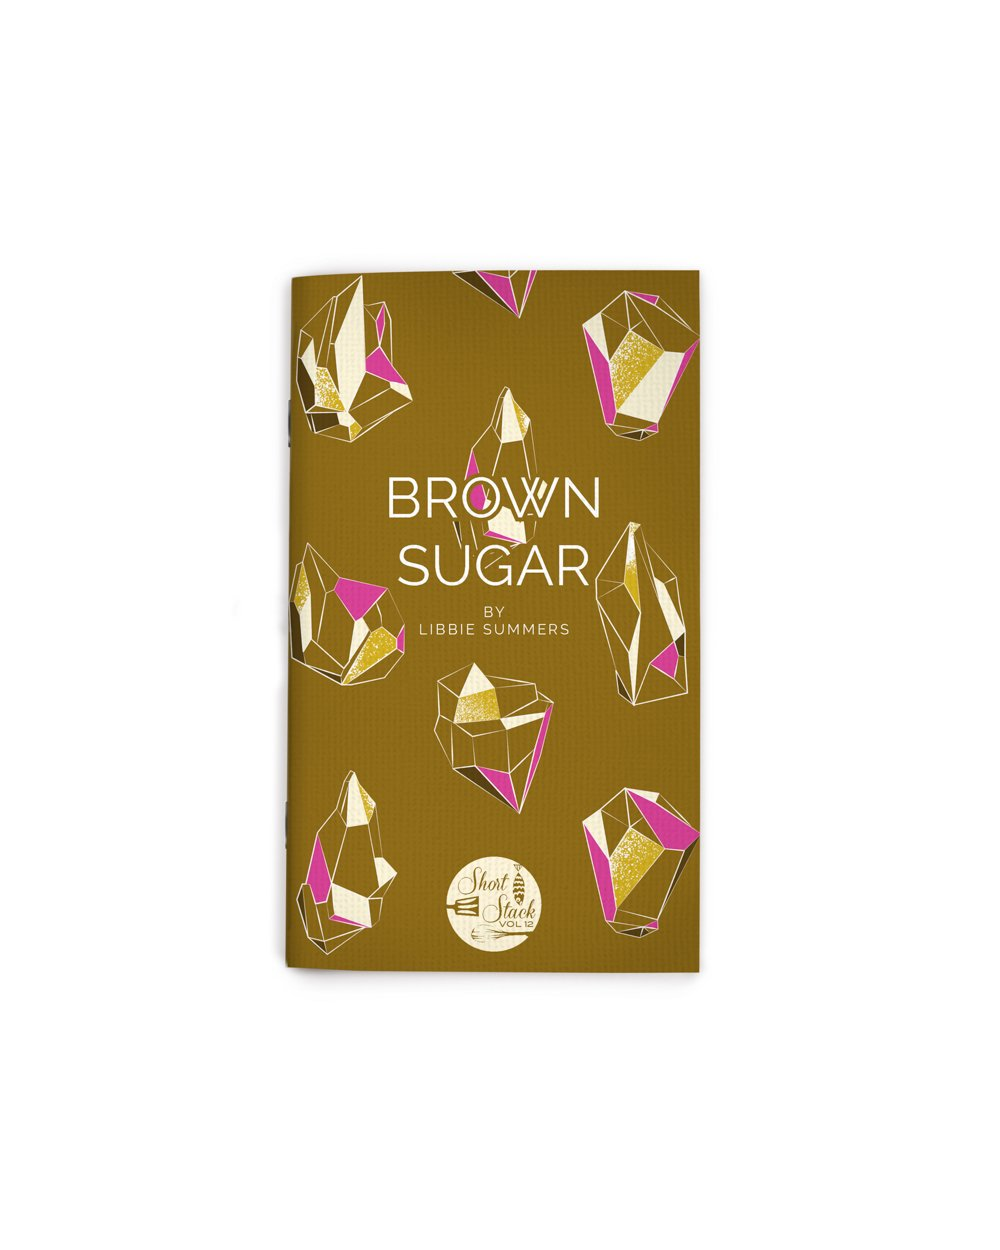 Vol 12: Brown Sugar (By Libbie Summers)